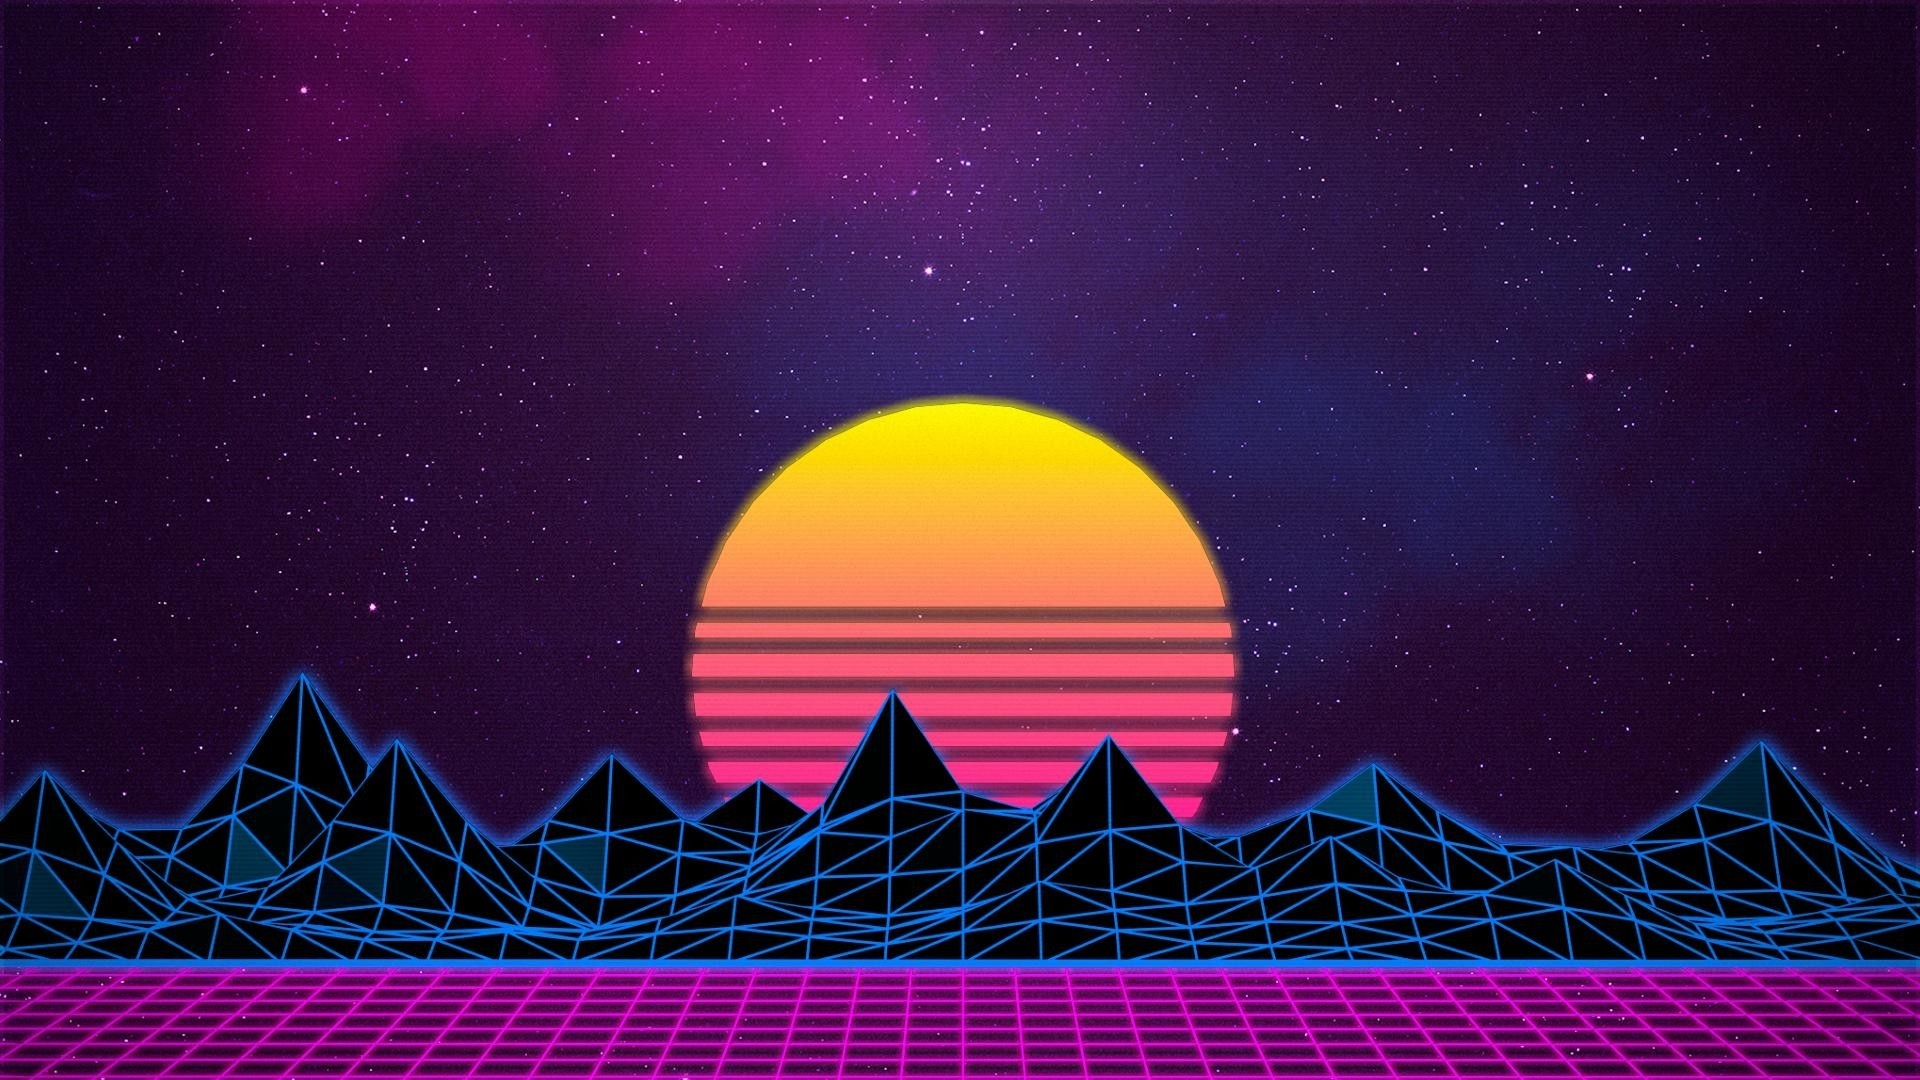 retro 80s wallpaper (67+ images)